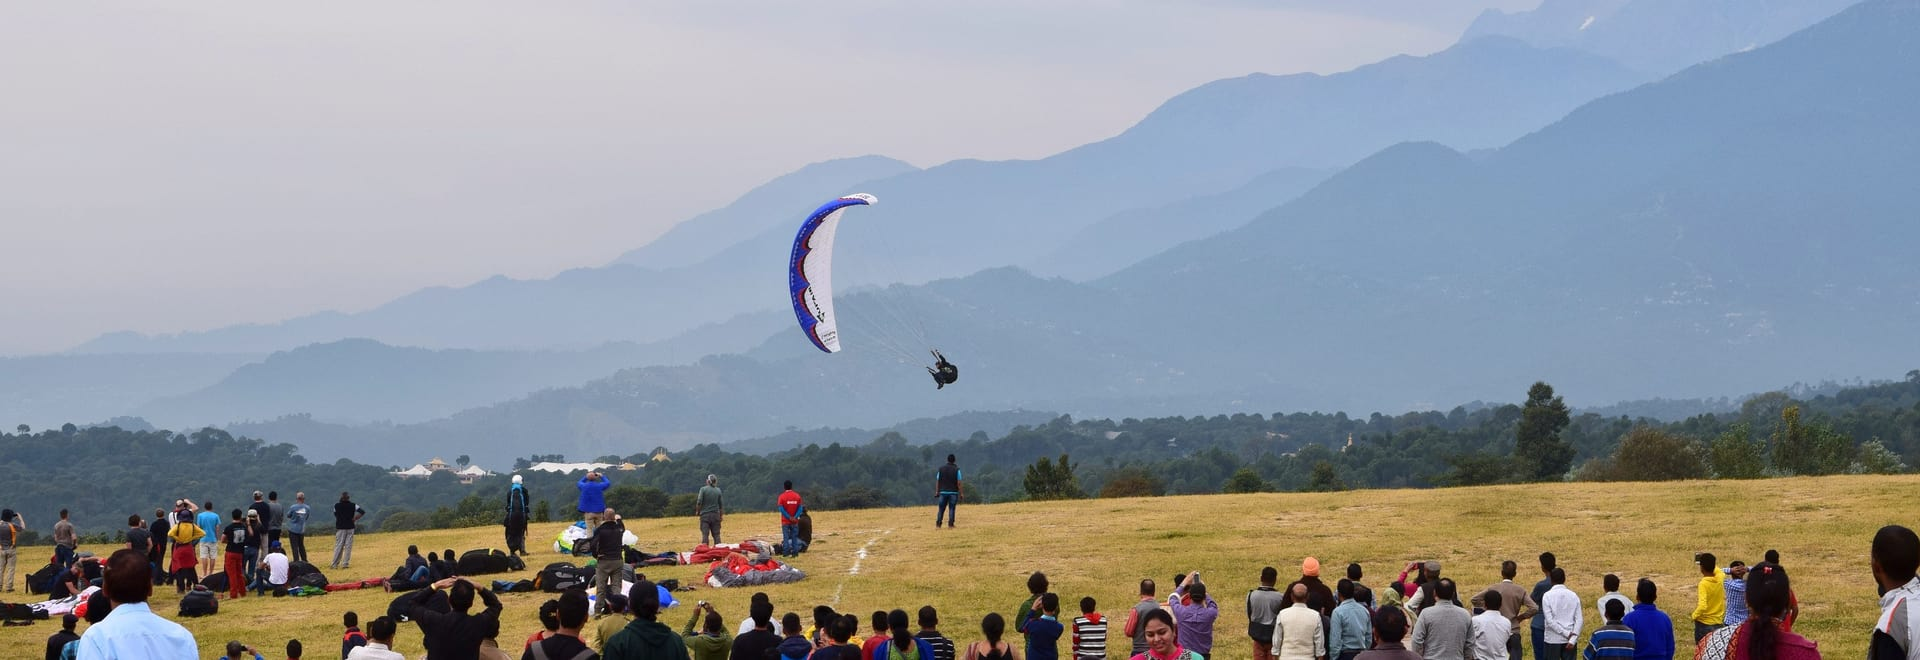 1492171506_paragliding_world_cup_2015_at_nearby_bir-billing.jpg